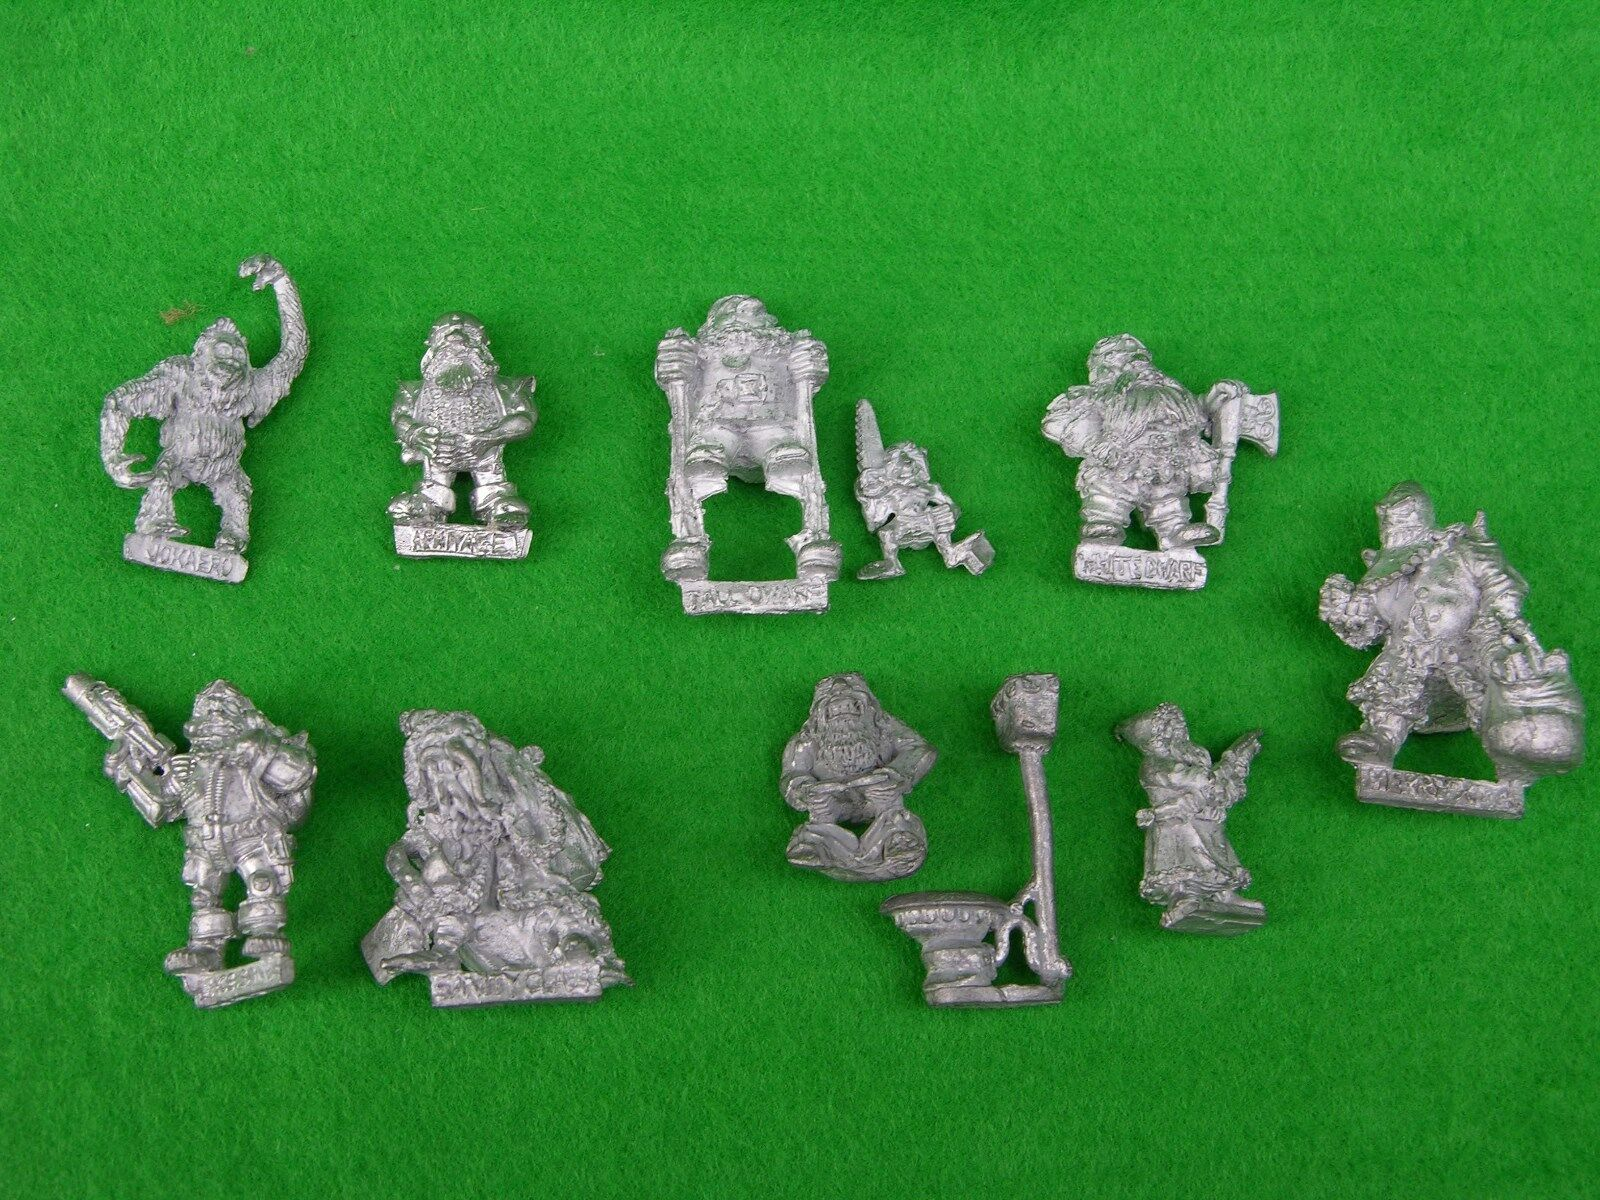 Gw zitadelle miniaturen limited editions & seltene version, multi-listing